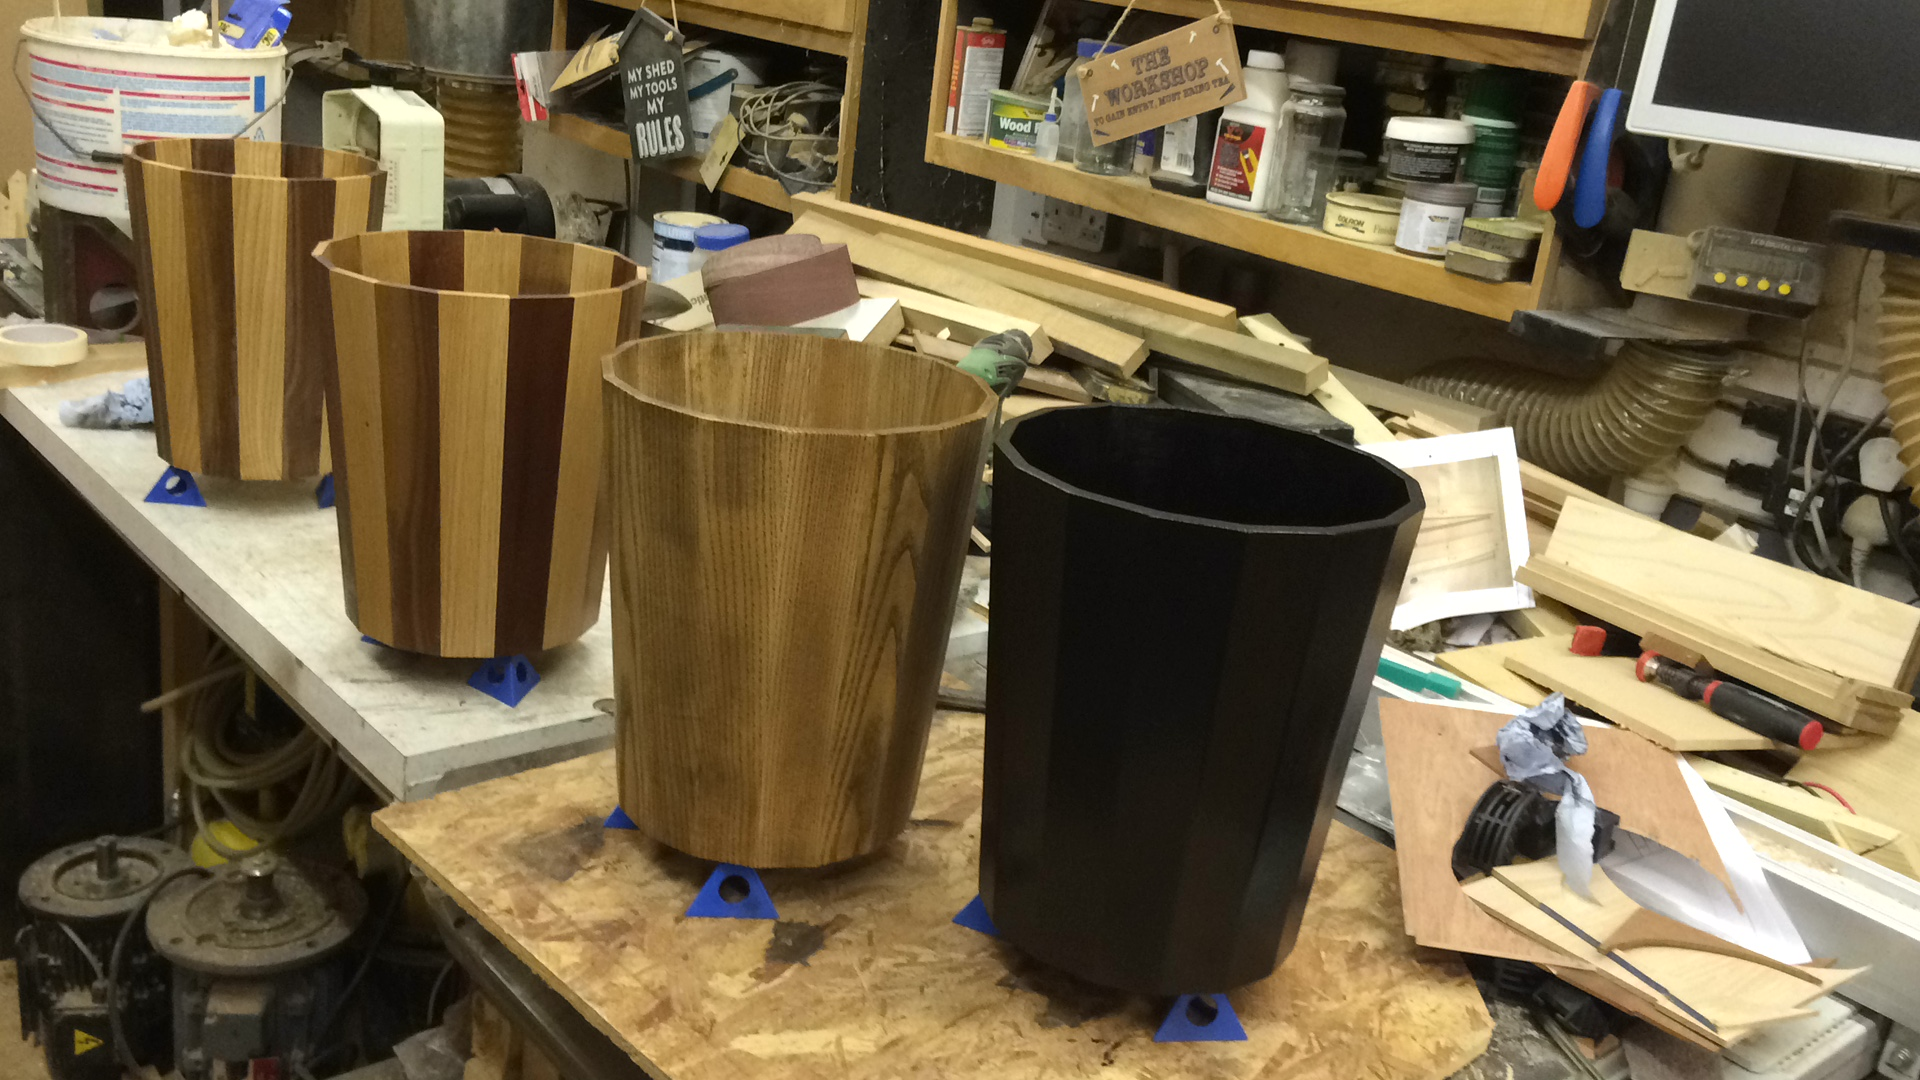 Coopered Bin project 011.jpg